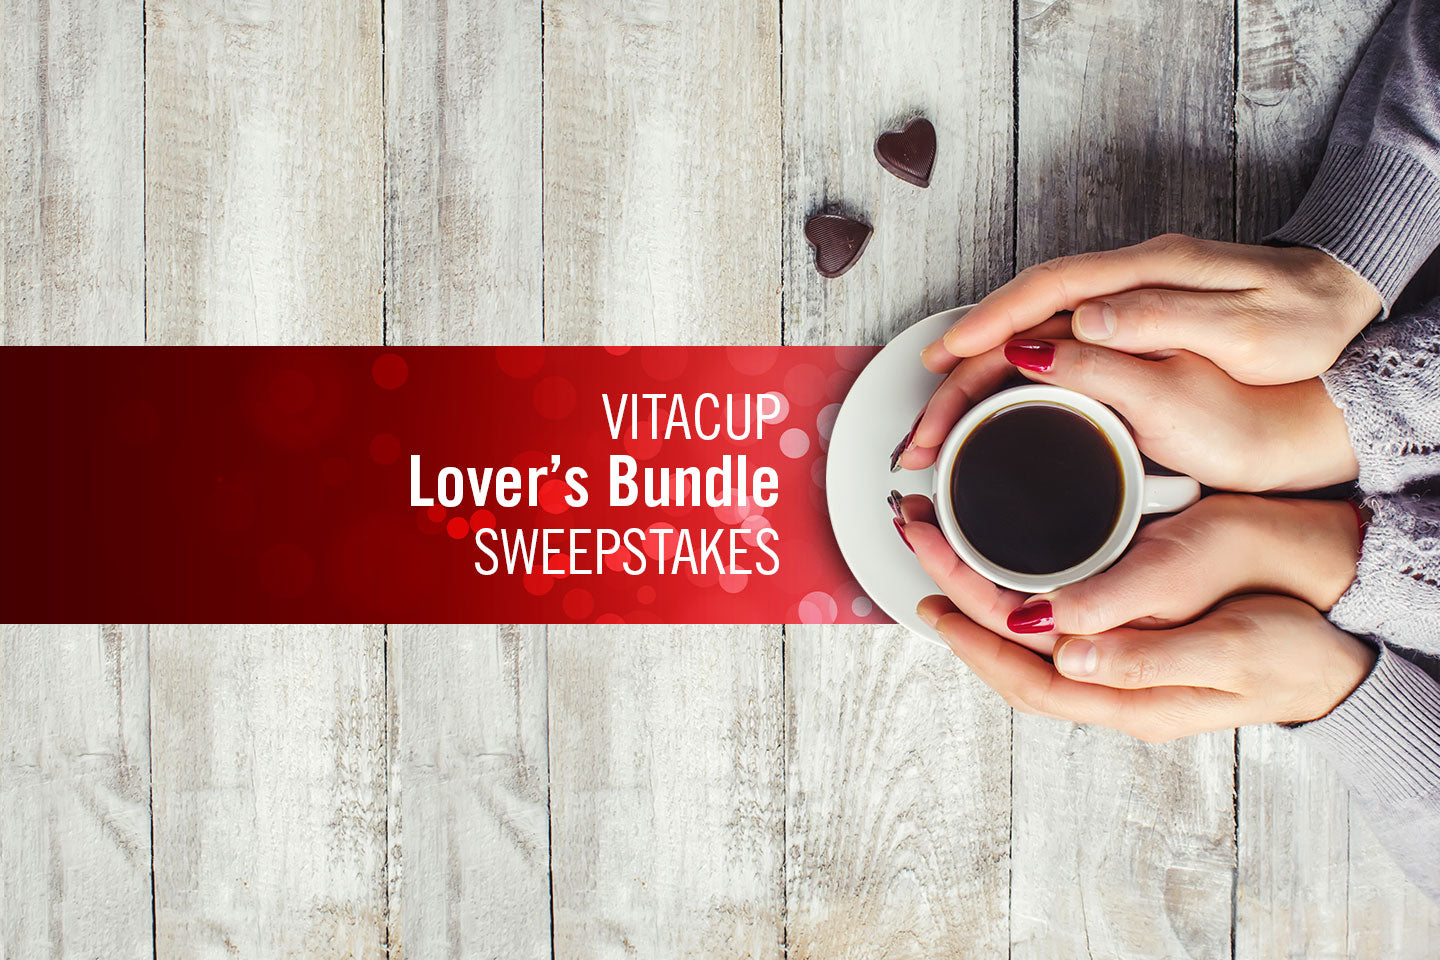 Sweepstakes v contest